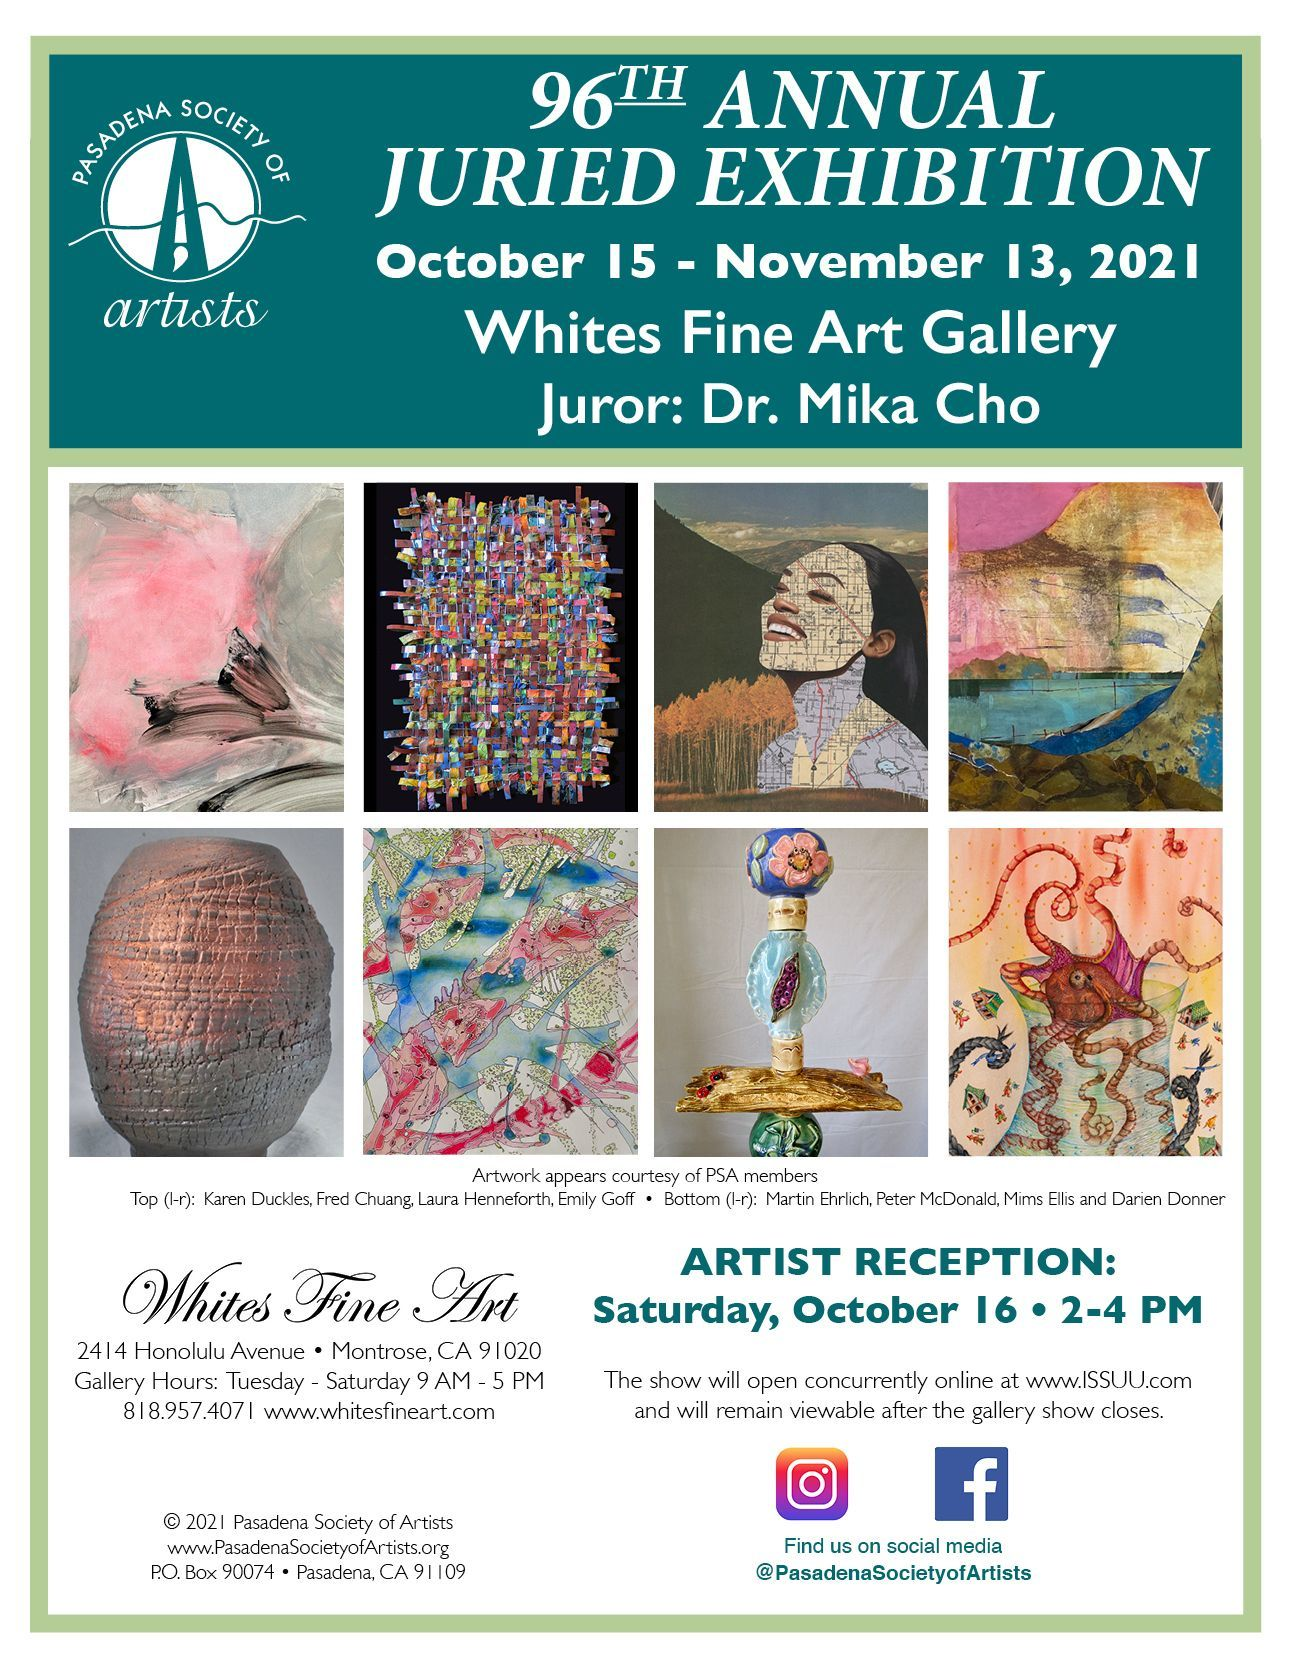 96th Annual PSA Juried Exhibition